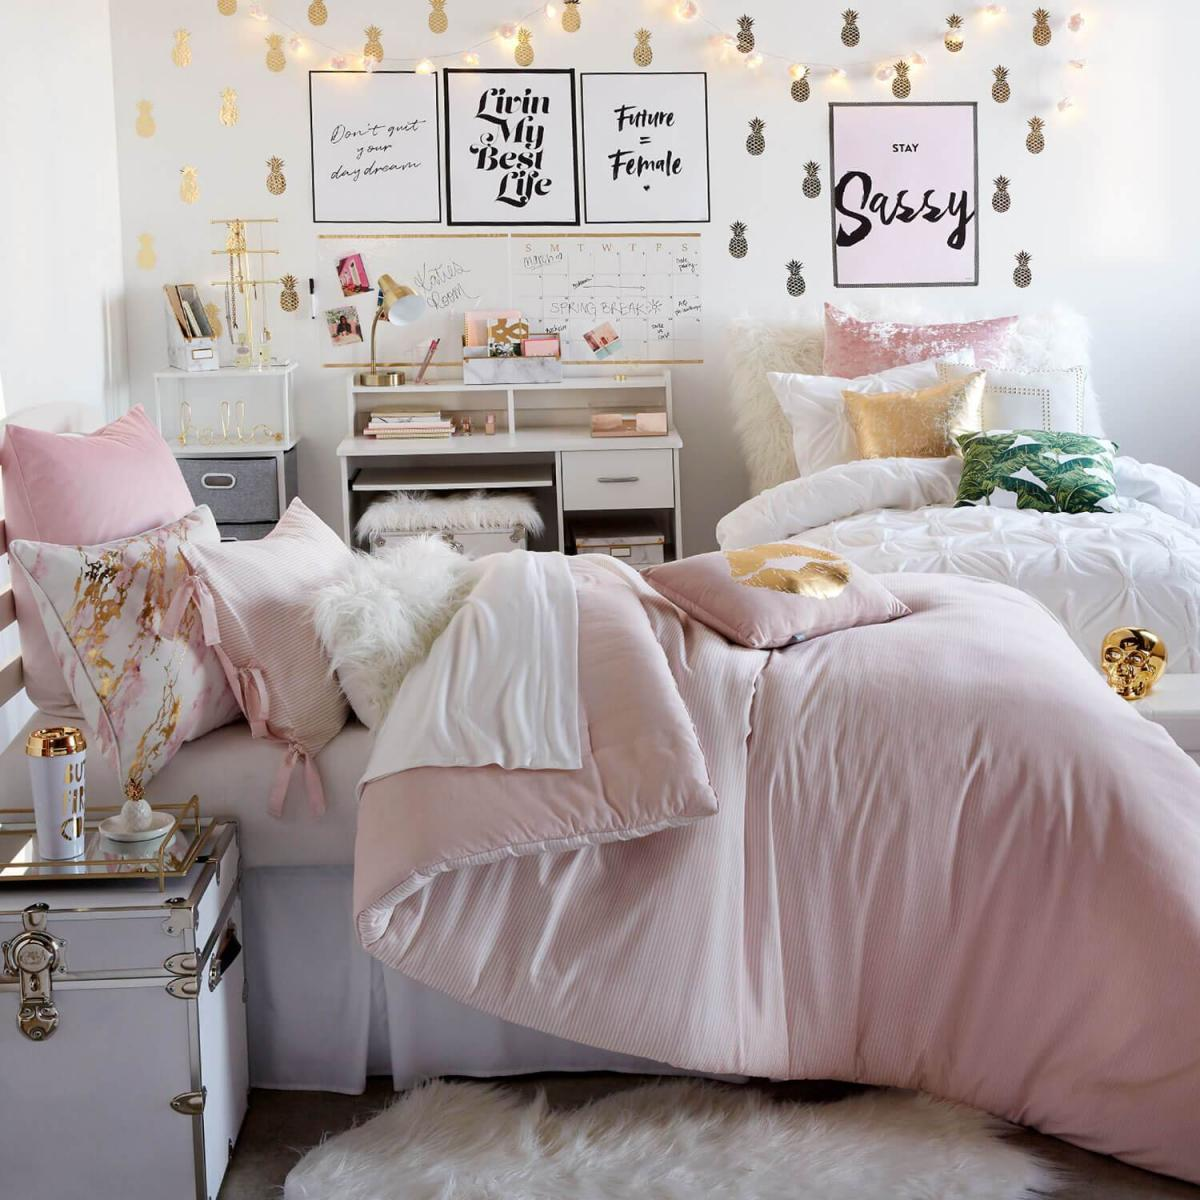 The most cozy bedroom decorated especially for winter holidays